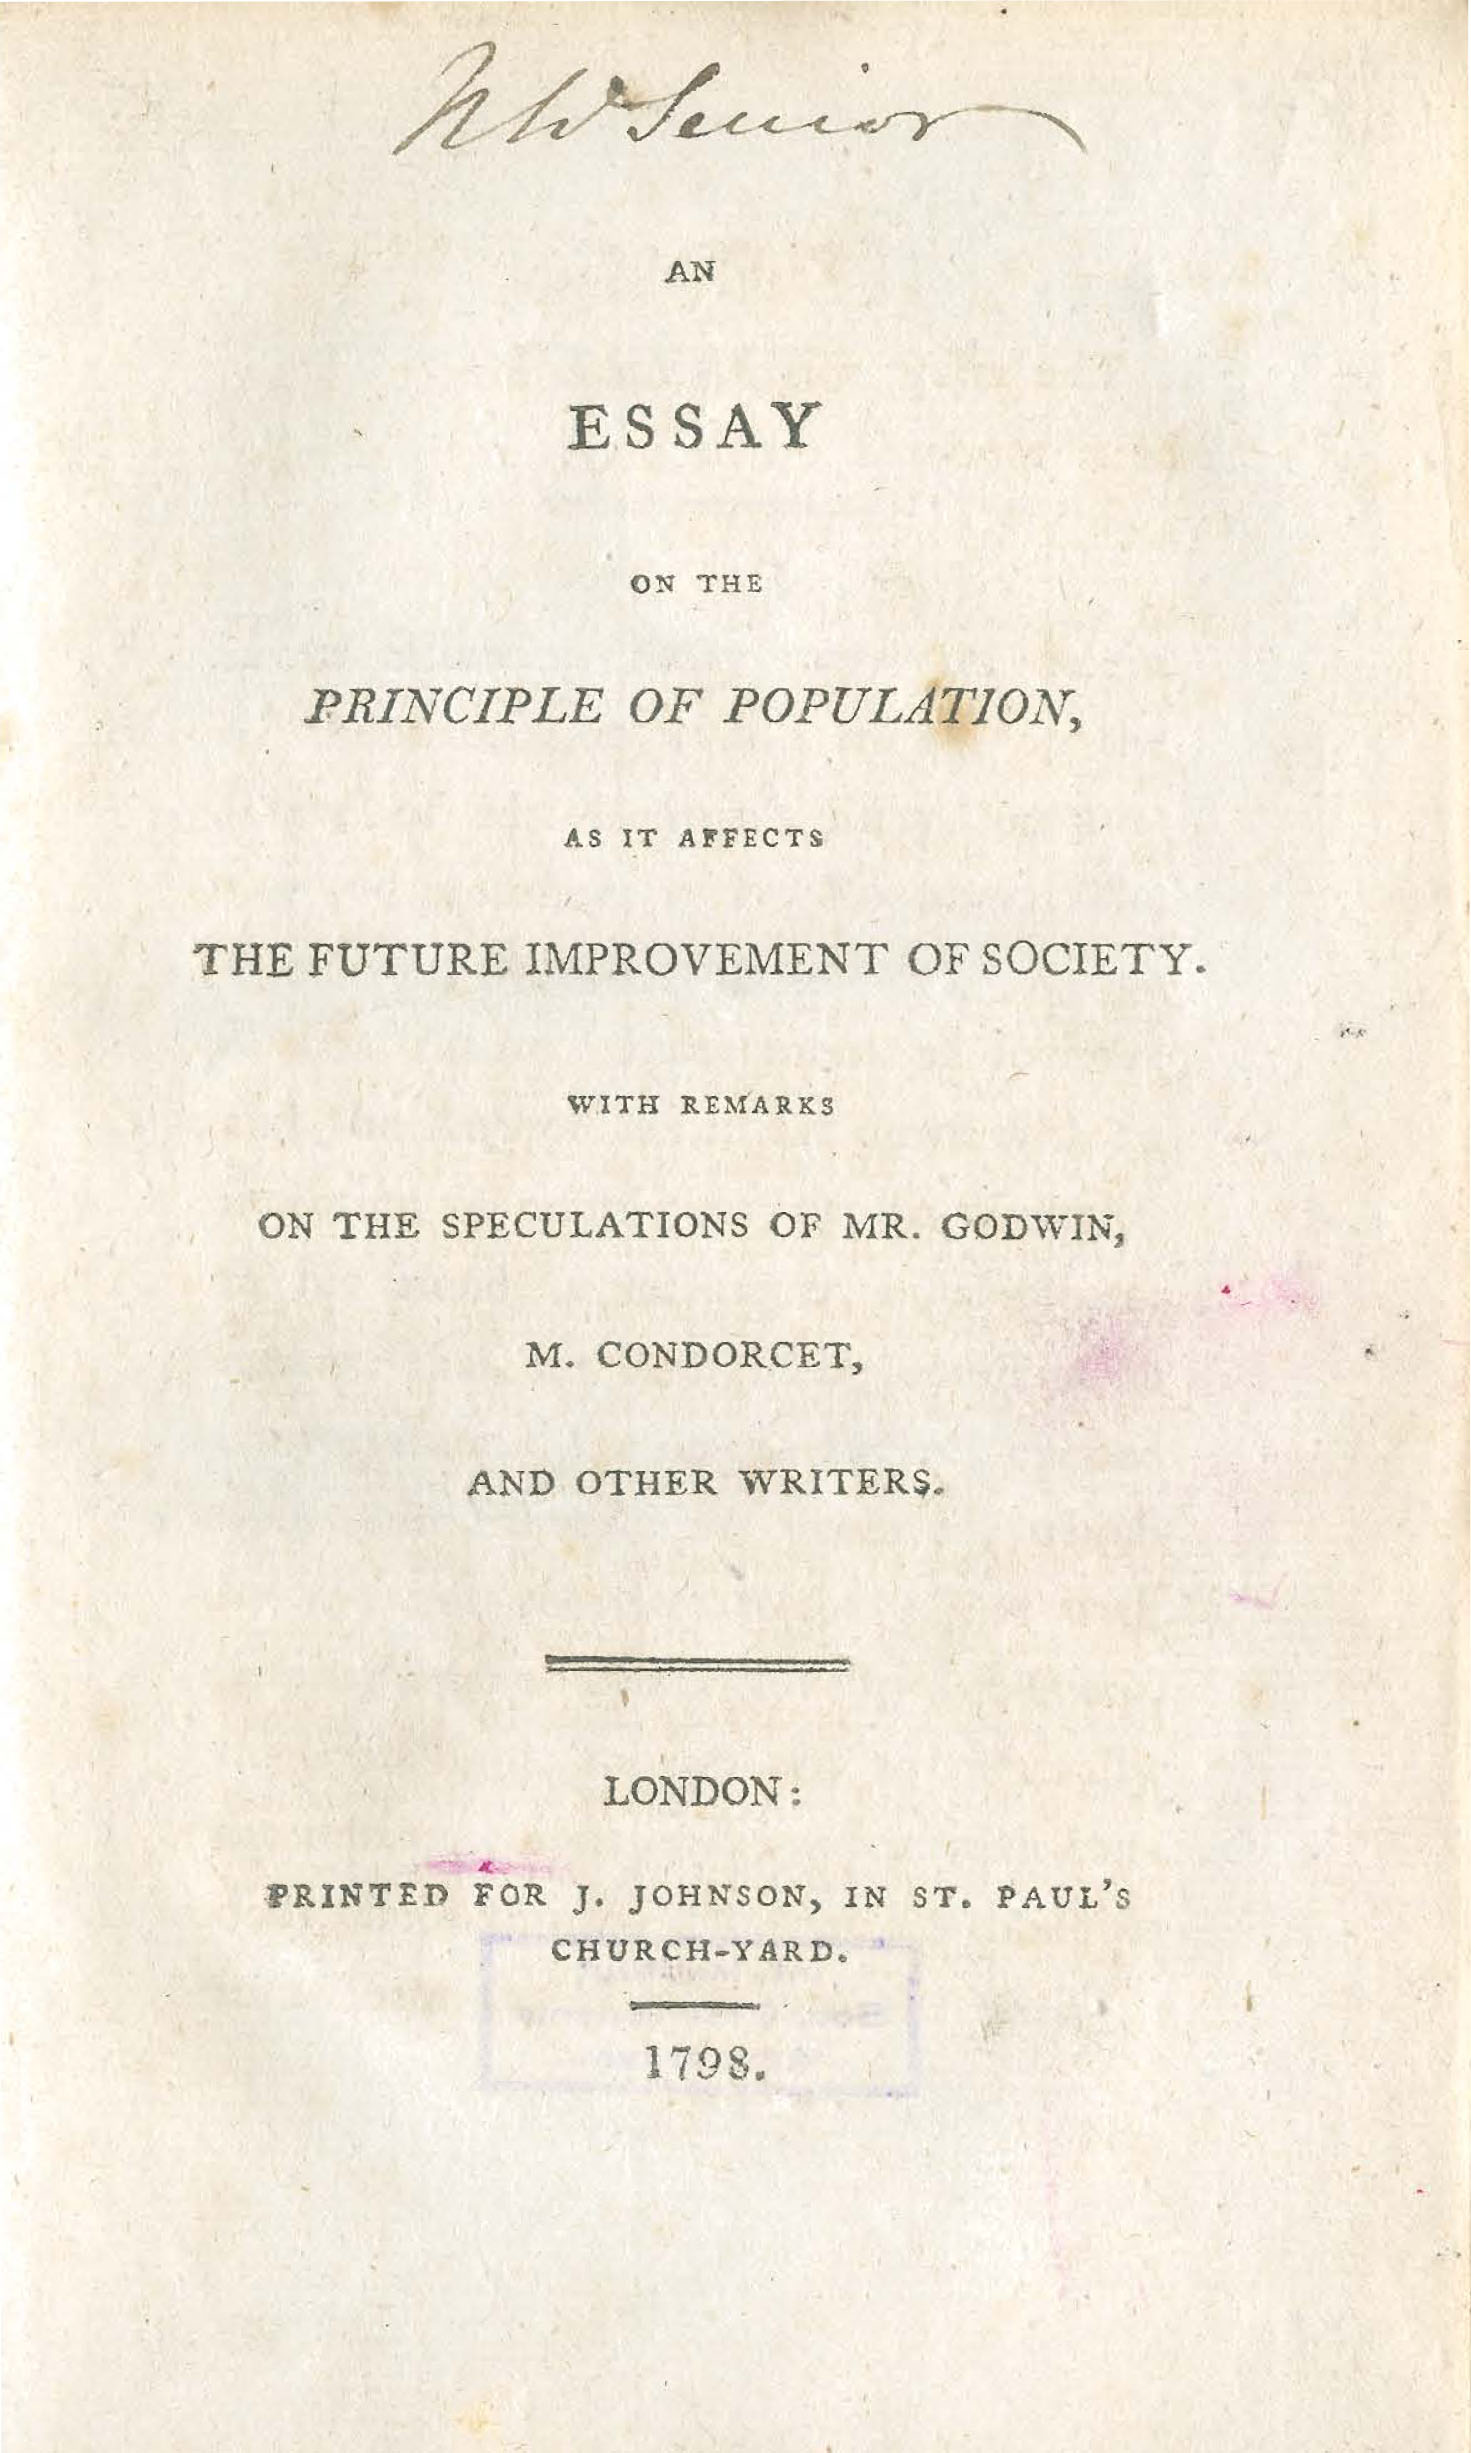 001 Thomas Malthus An Essay On The Principle Of Population Marvelous Summary Analysis Argued In His (1798) That Full